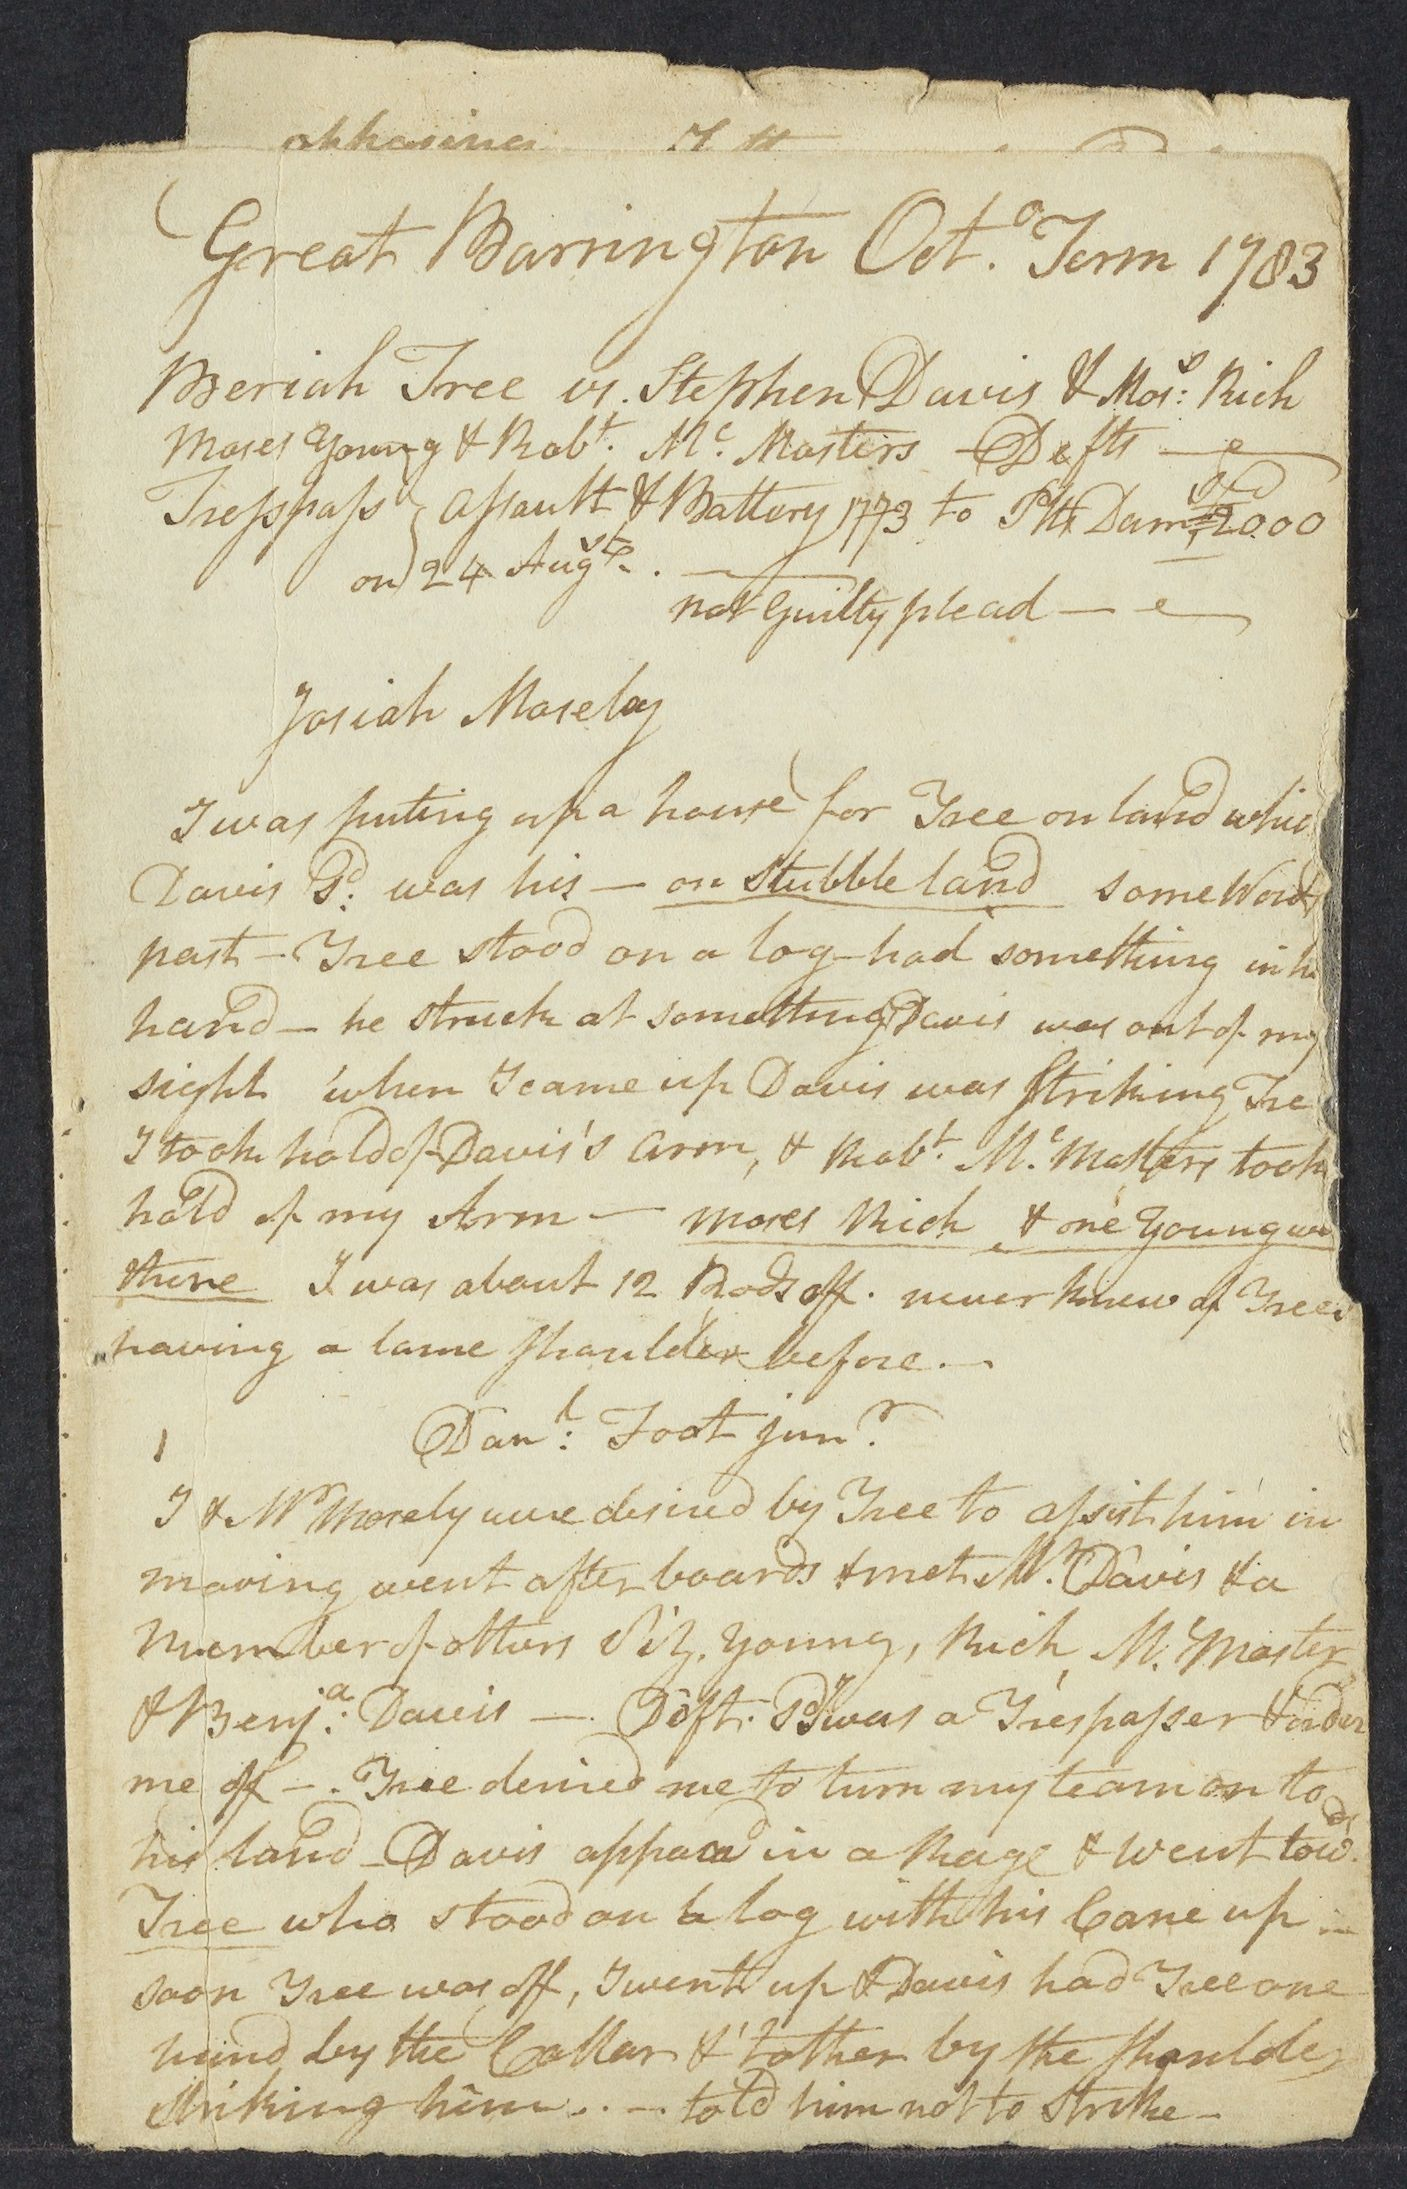 Notes on cases in Great Barrington, 1783